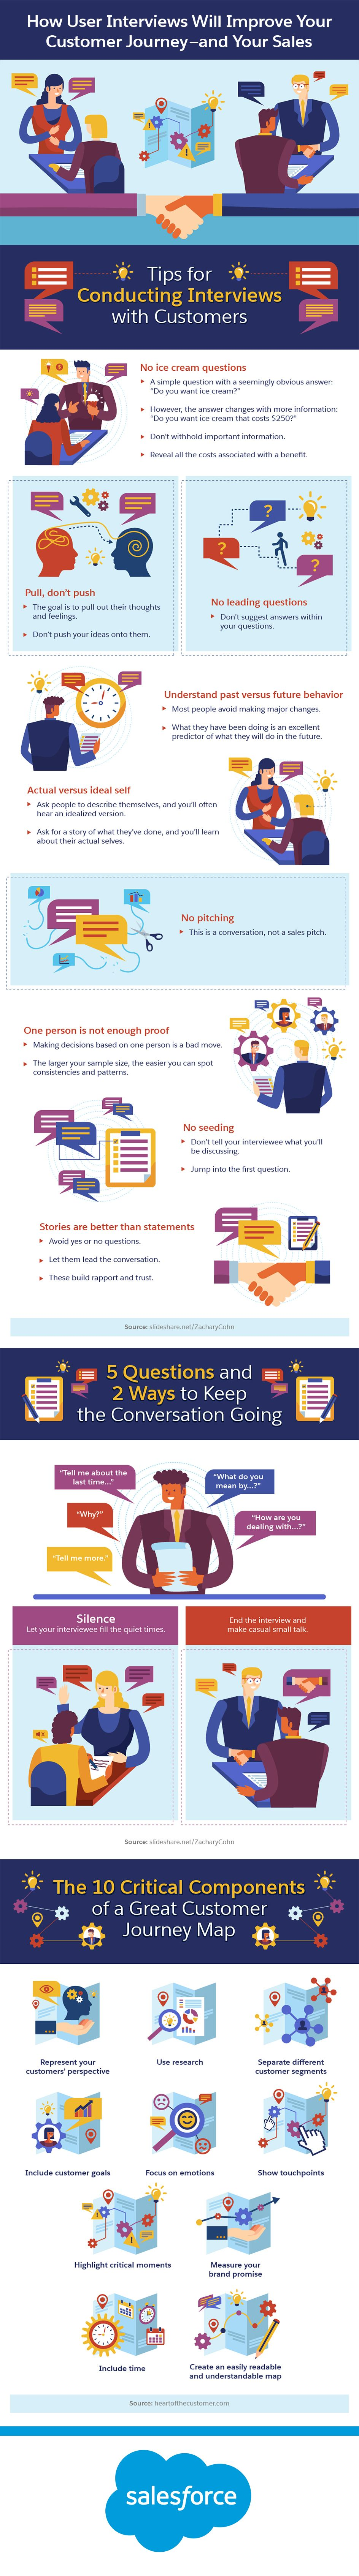 How User Interviews Will Improve Your Customer Journey—and Your Sales #Infographic